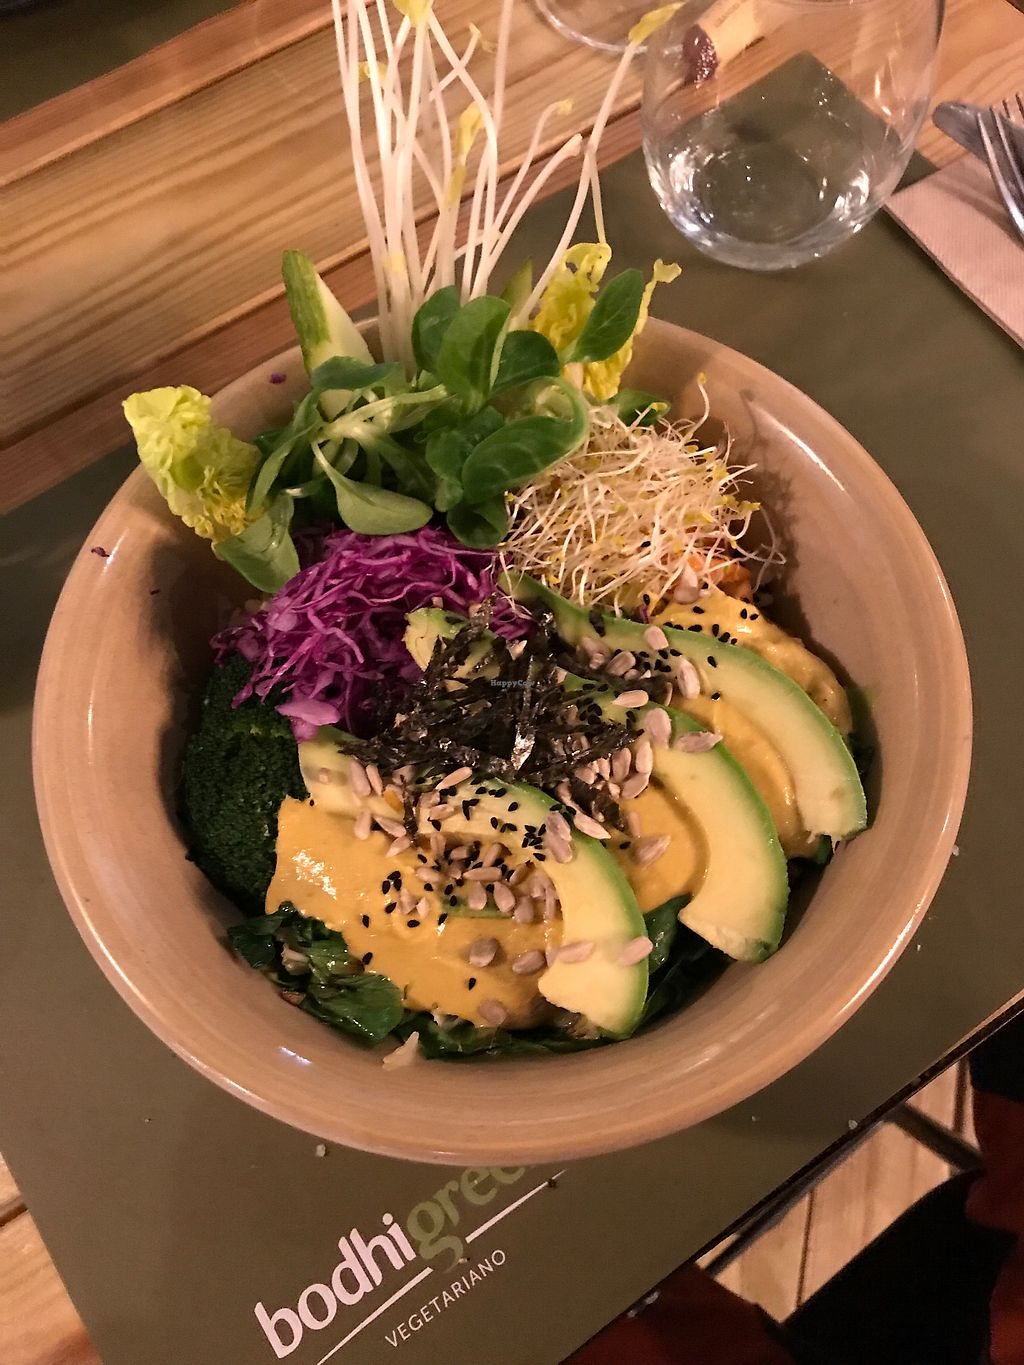 "Photo of BodhiGreen Vegetariano  by <a href=""/members/profile/rdraether"">rdraether</a> <br/>Very delicious Japanese bowl. :oP <br/> December 21, 2017  - <a href='/contact/abuse/image/59859/337731'>Report</a>"